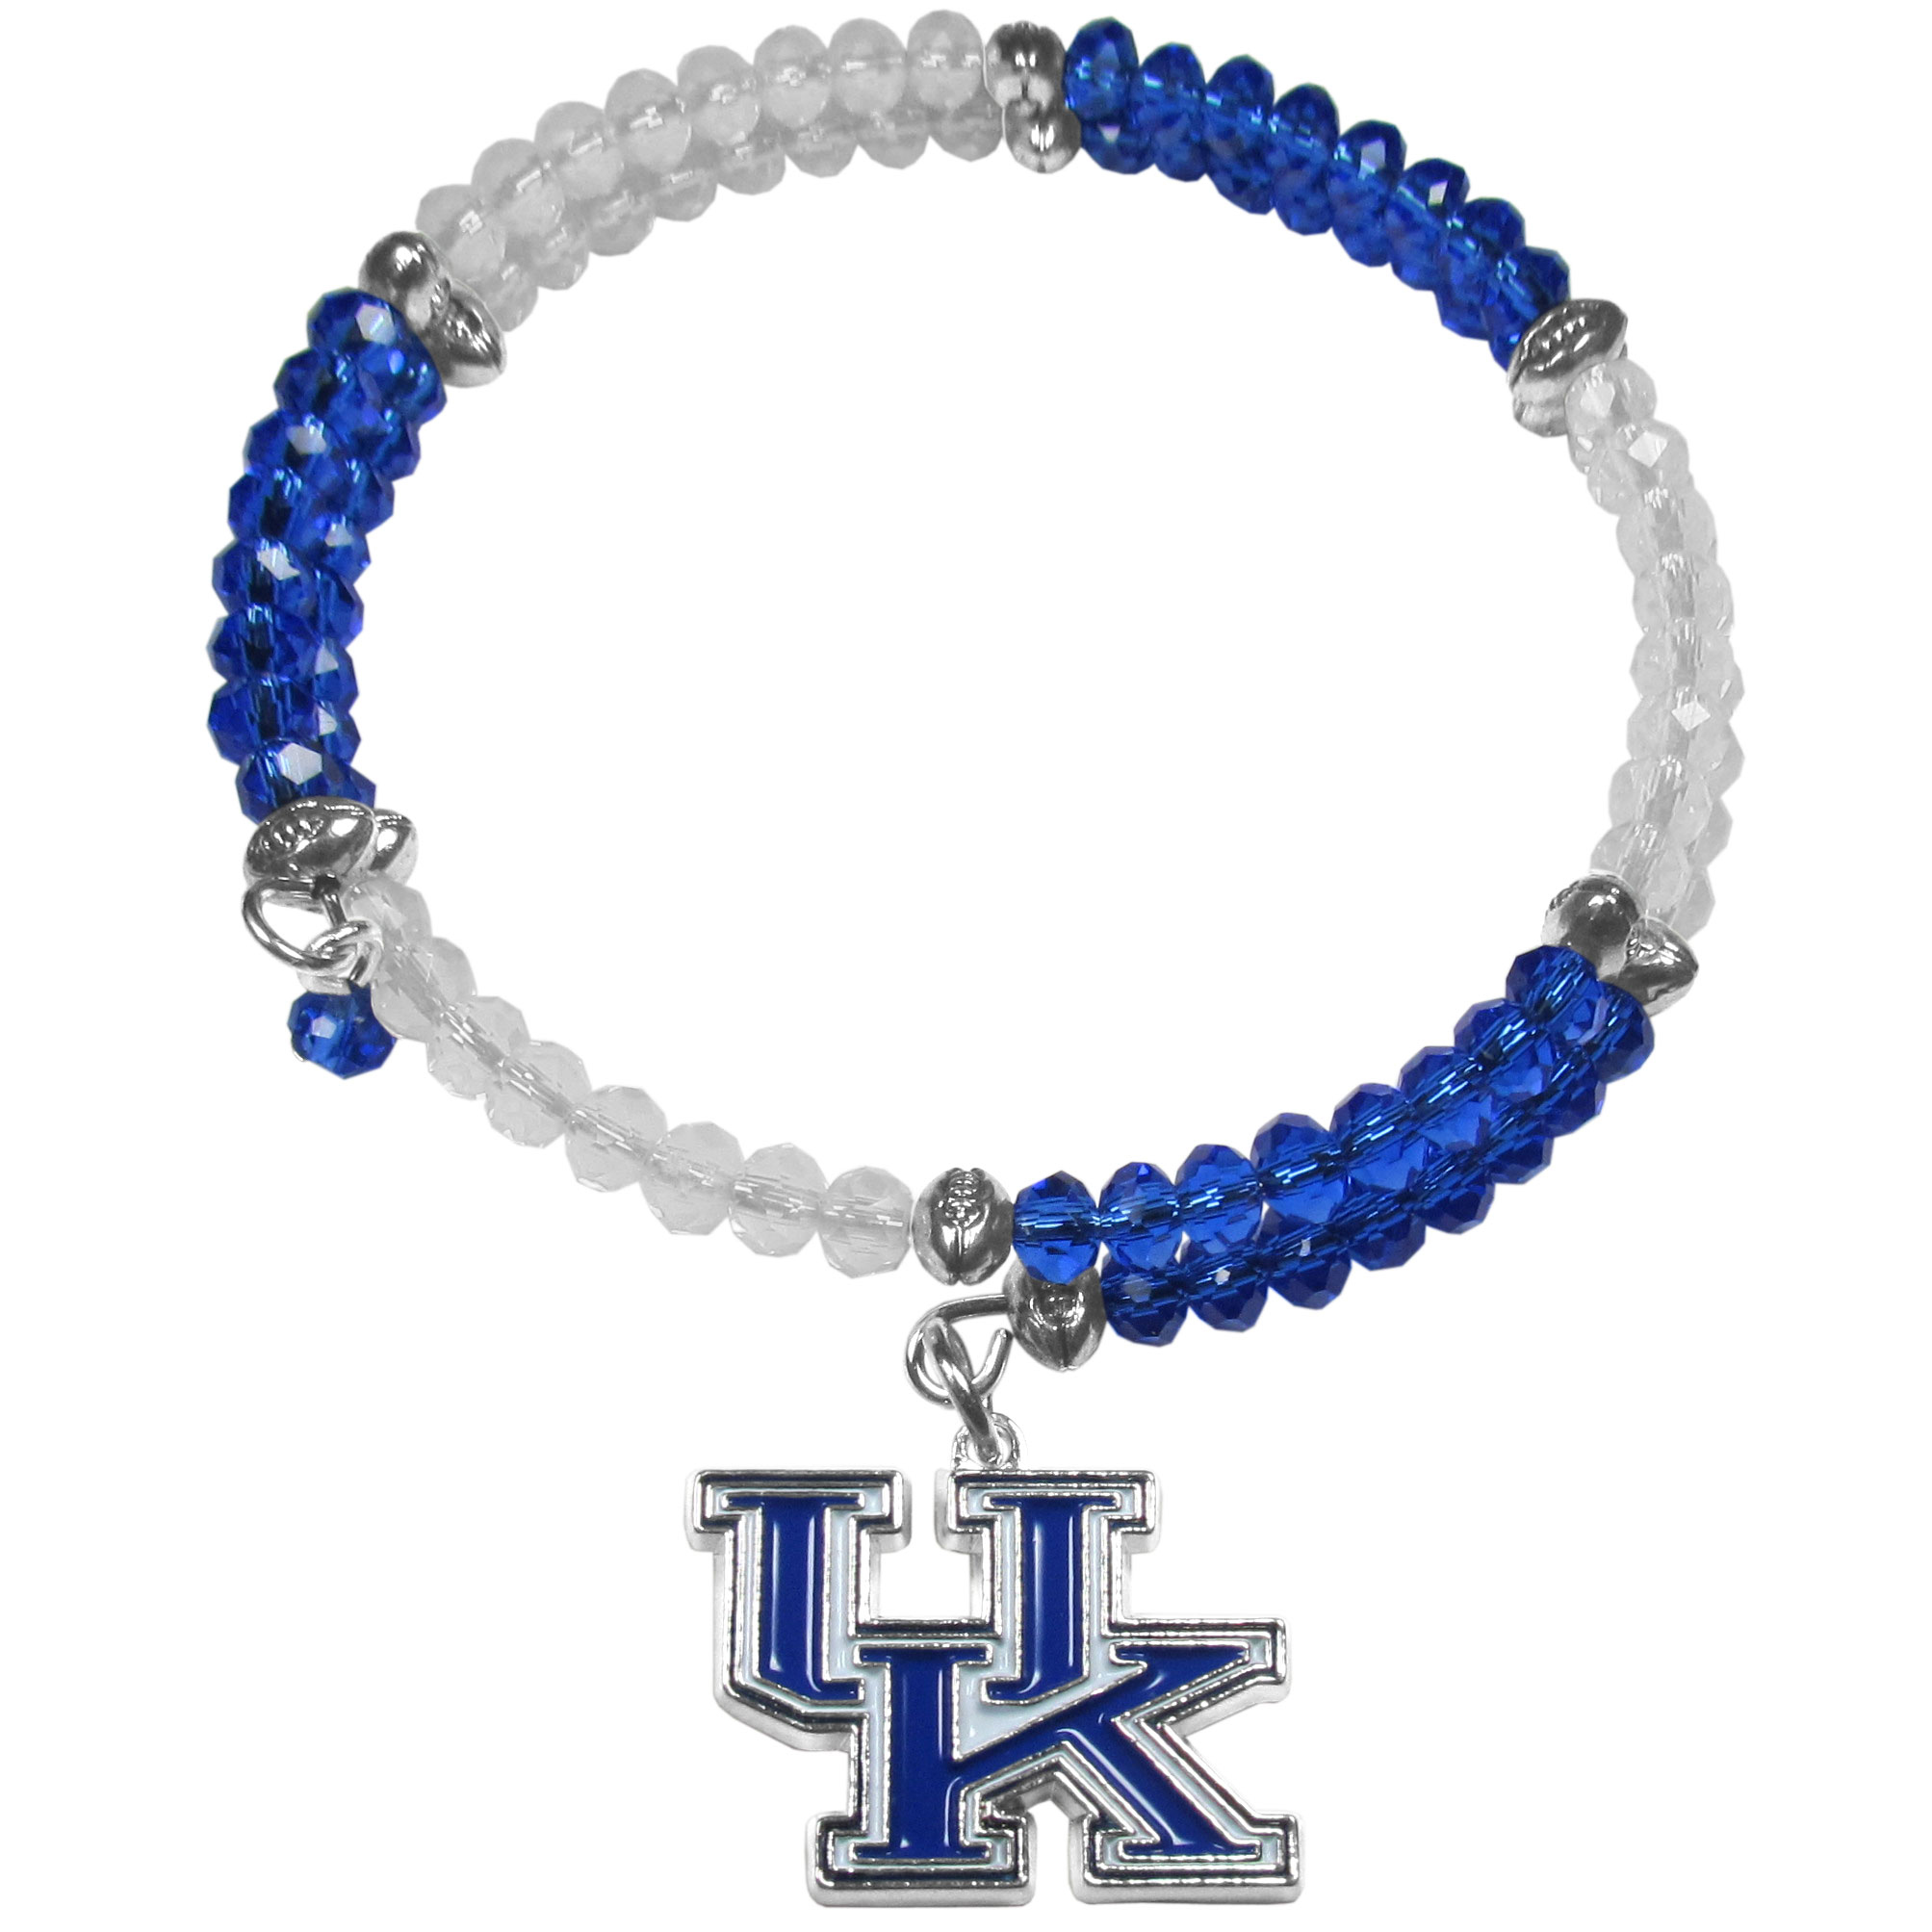 Kentucky Wildcats Crystal Memory Wire Bracelet - Our Kentucky Wildcats memory wire crystal bracelet is trendy way to show off your love of the game. The double wrap bracelet is completely covered in 4 mm crystals that are broken up with adorable football beads creating a designer look with a sporty twist. The bracelet features a fully cast, metal team charm that has expertly enameled team colors. This fashion jewelry piece is a must-have for the die-hard fan that chic look that can dress up any outfit.